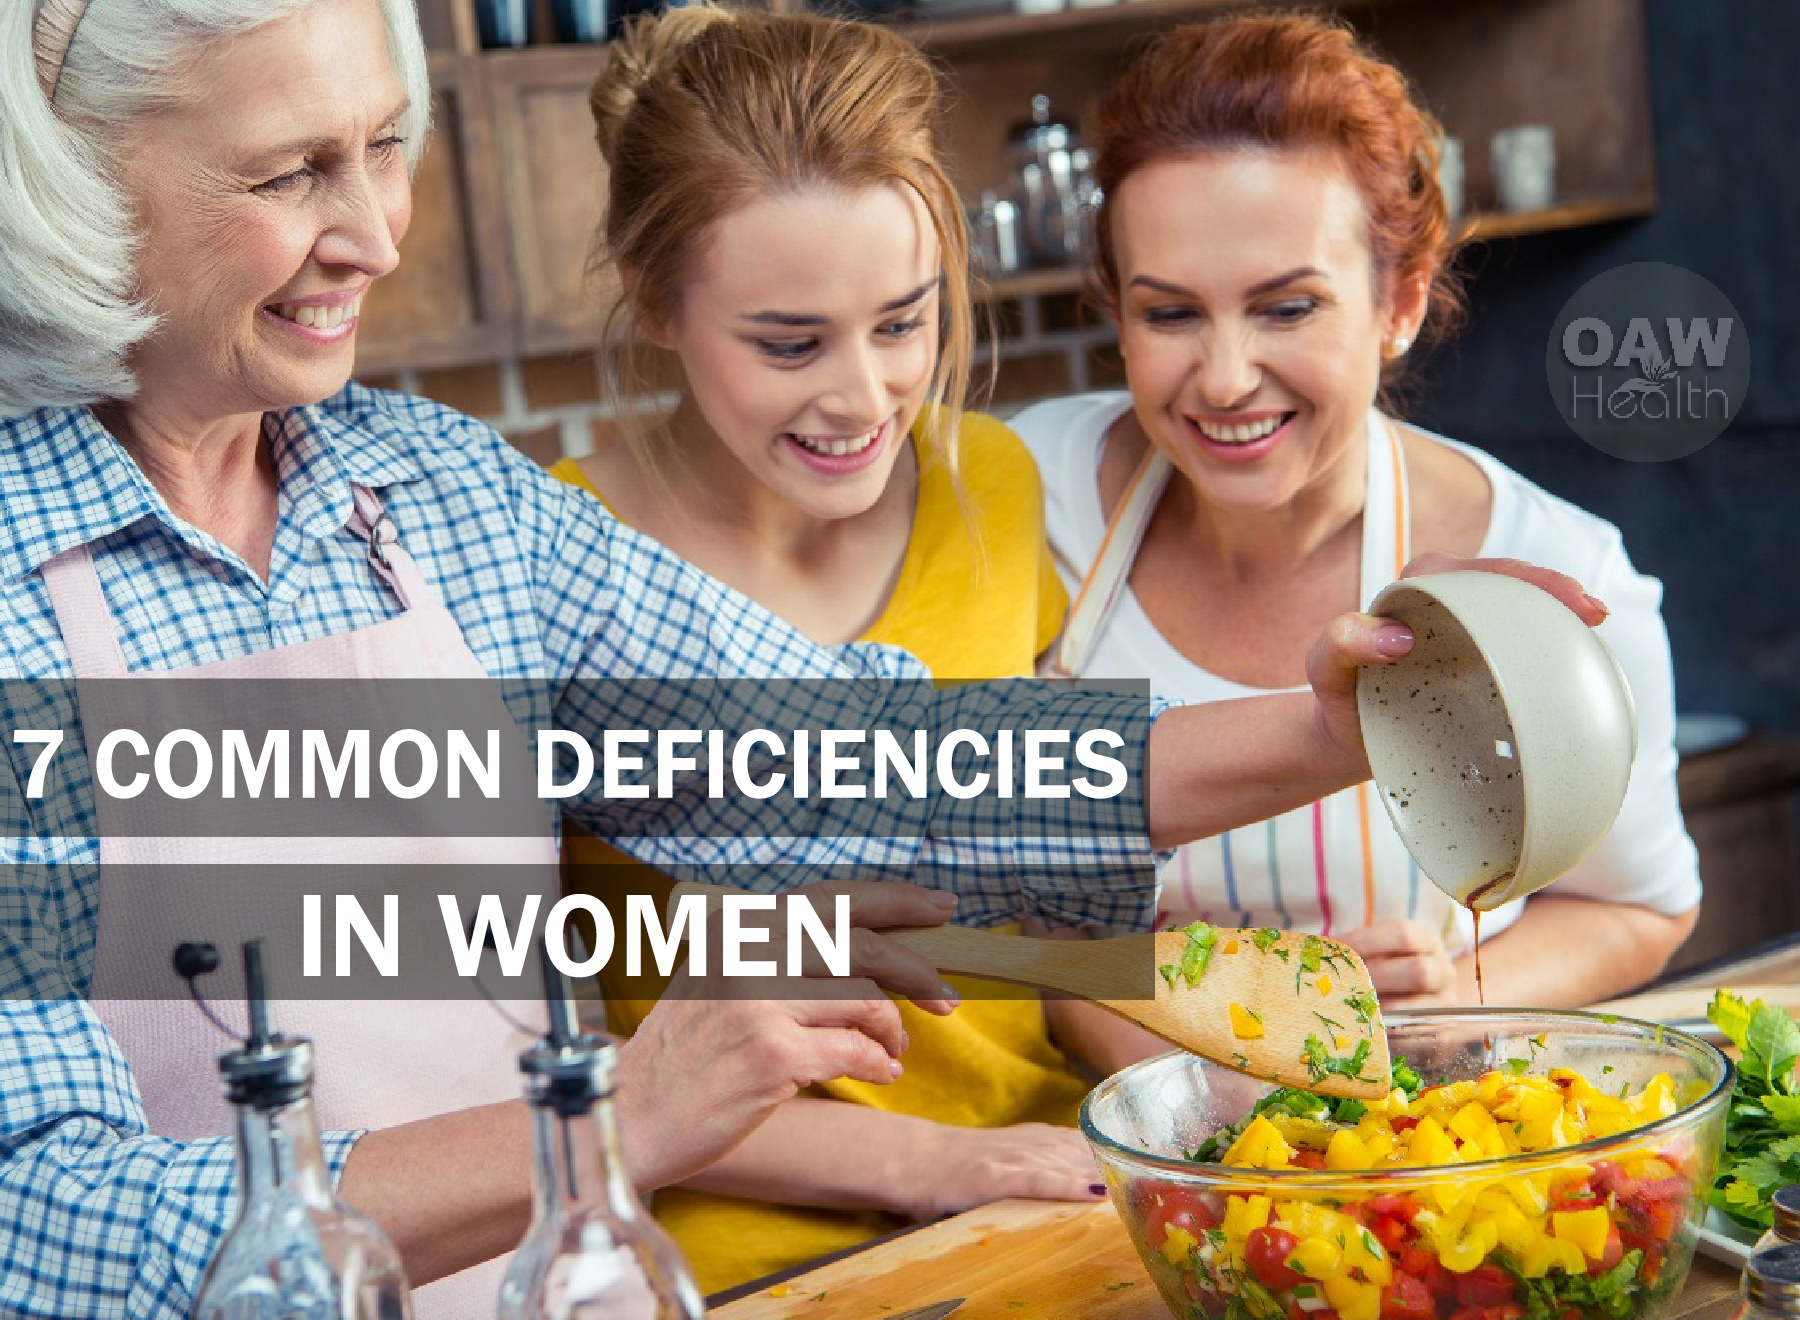 7 Common Deficiencies in Women